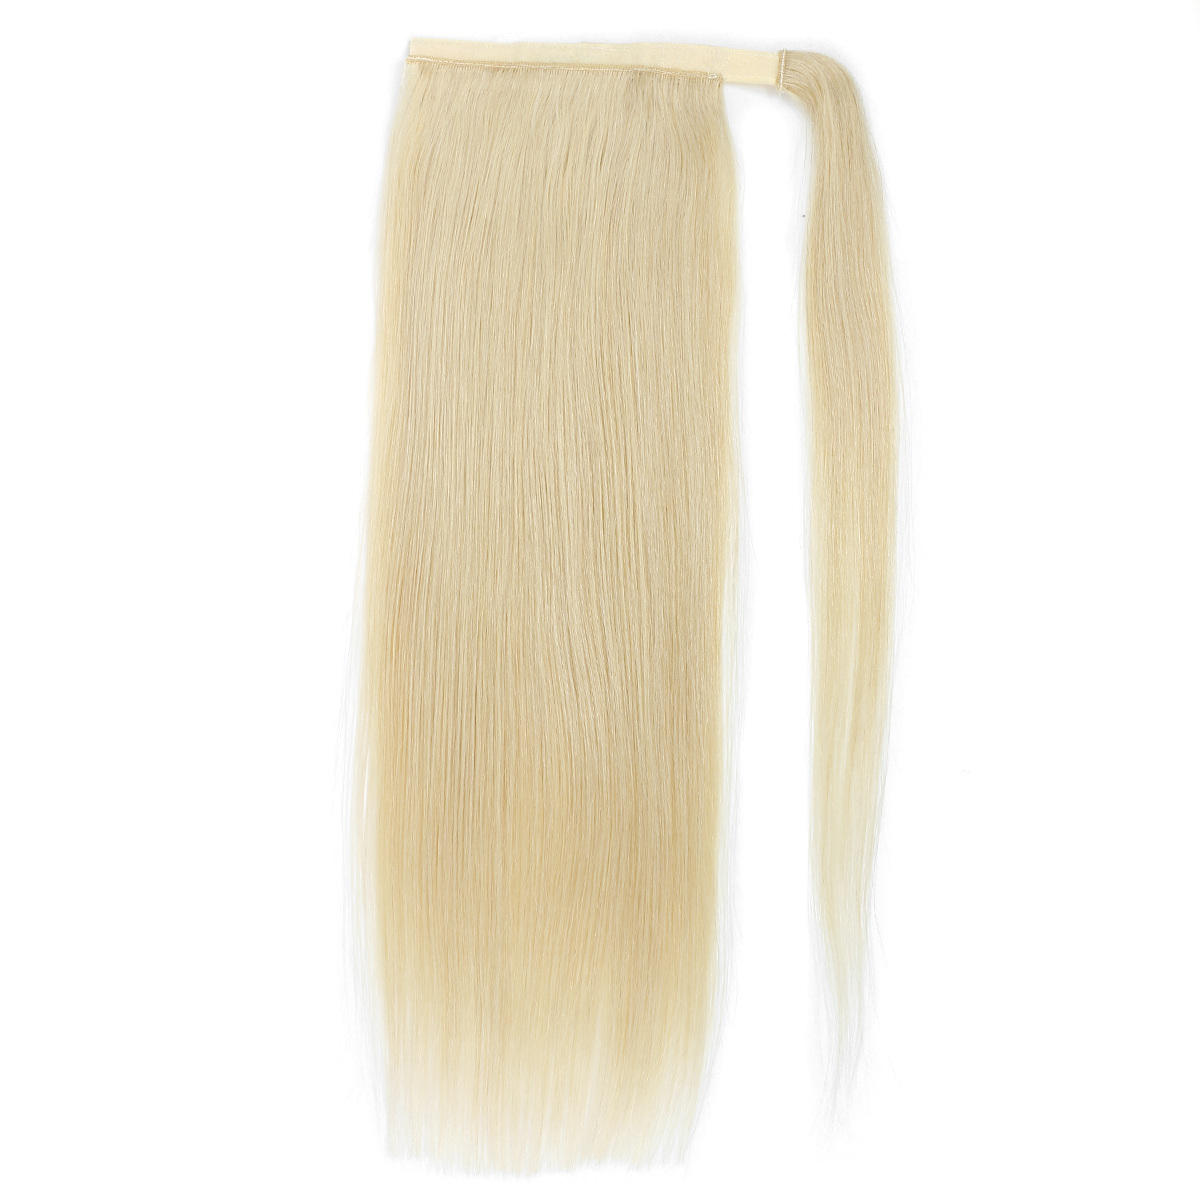 60g 16inch Hot Products Human Hair Drawstring Ponytail 613 Color Straight Ponytail Human Hair Extension